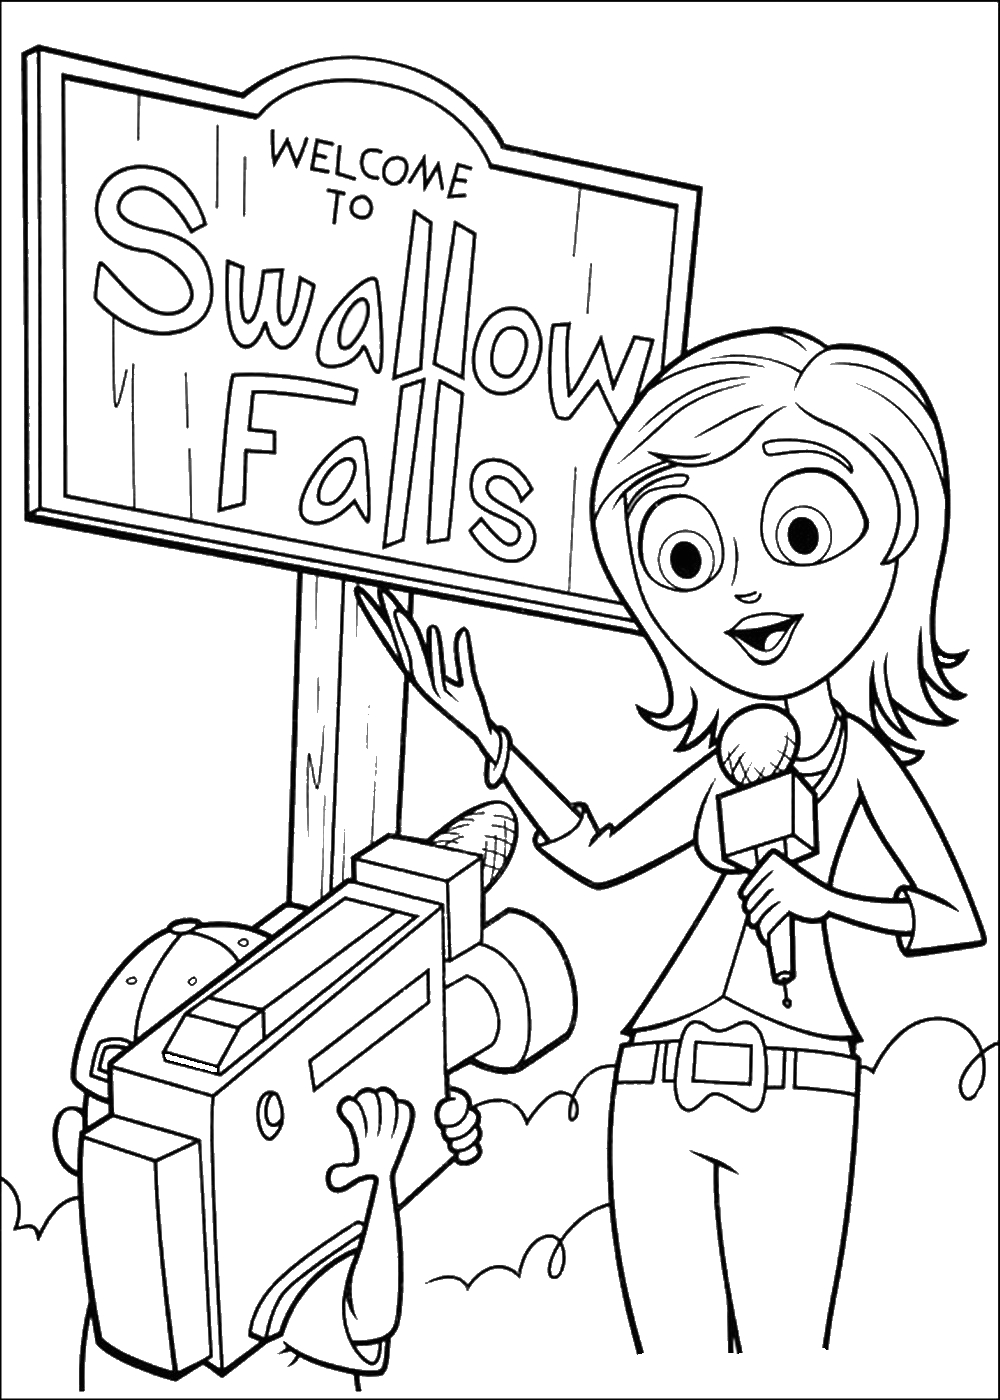 Free Cloudy with A Chance Of Meatballs Coloring Pages Cloudy with A Chance Of Meatballs Coloring Pages